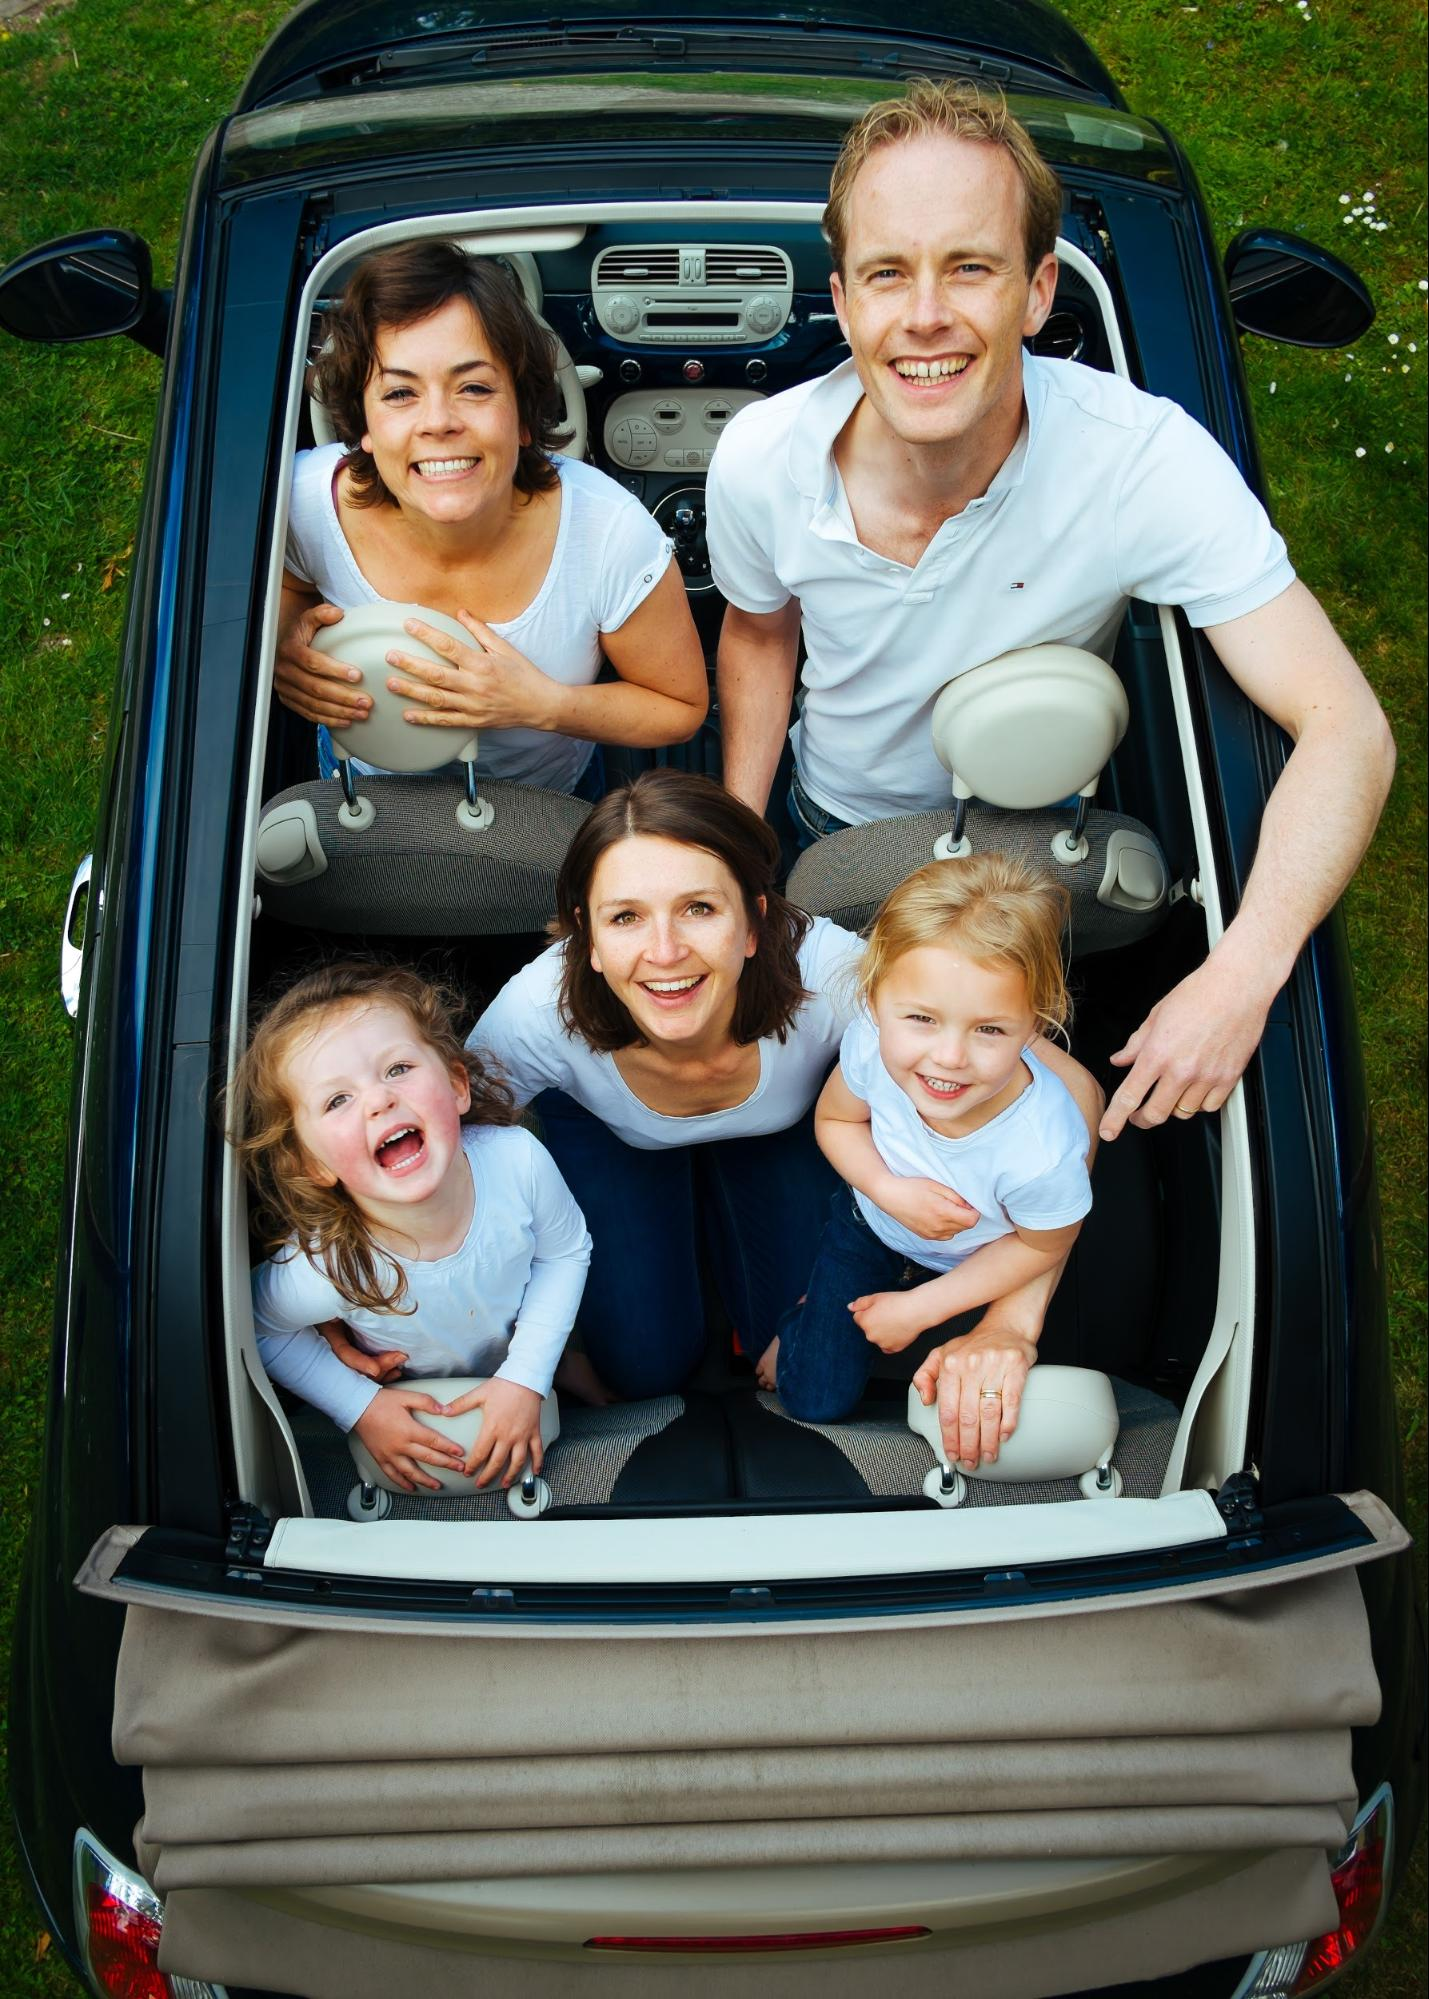 Having accomodations for everyone in a family car is key.